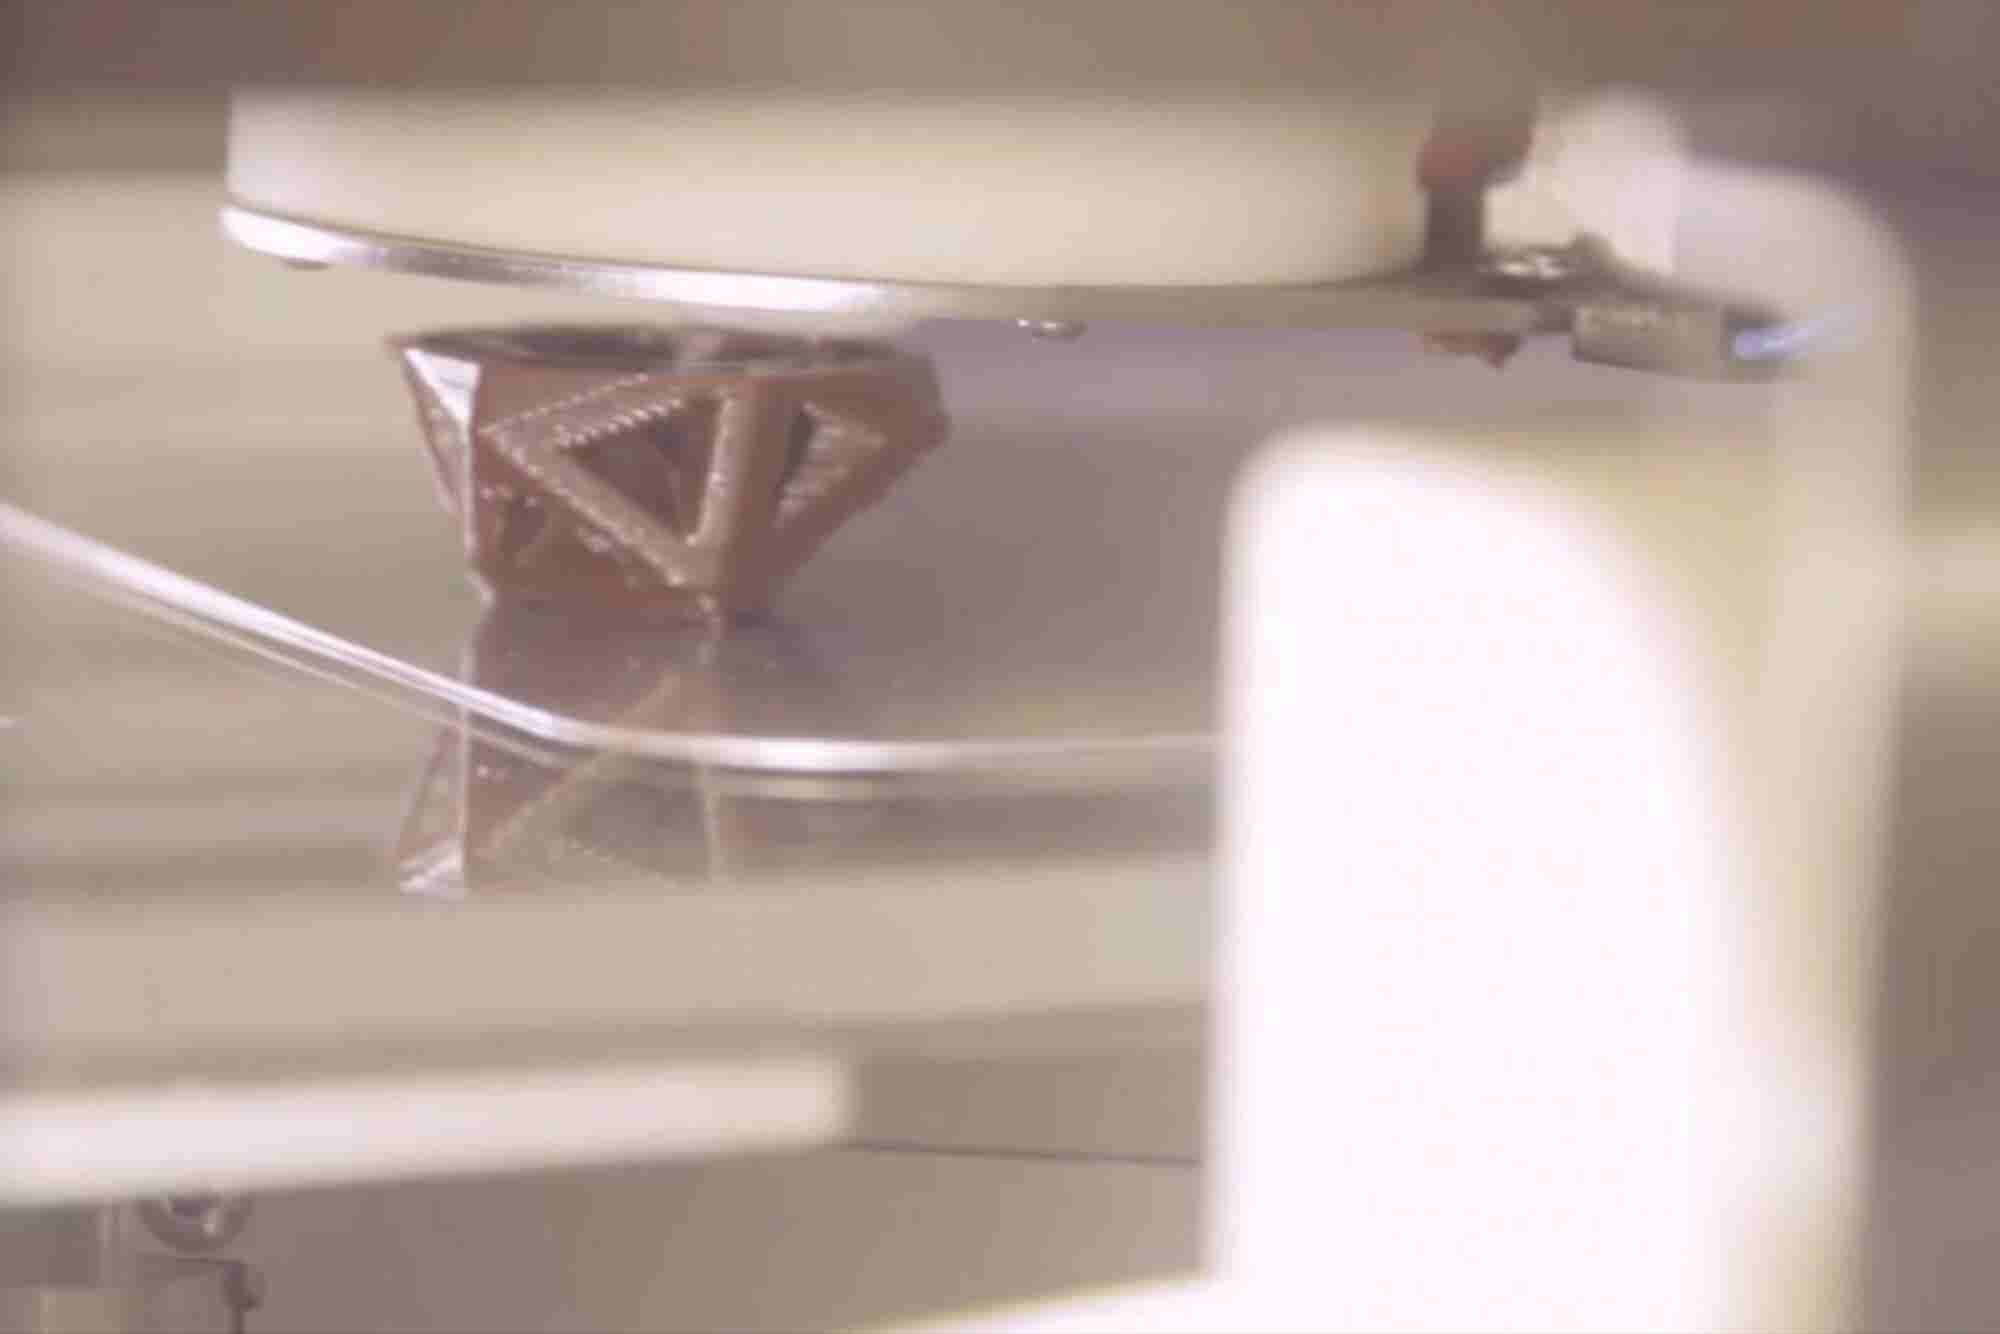 CocoJet: 3-D Printing and Hershey's Chocolate, Together at Last